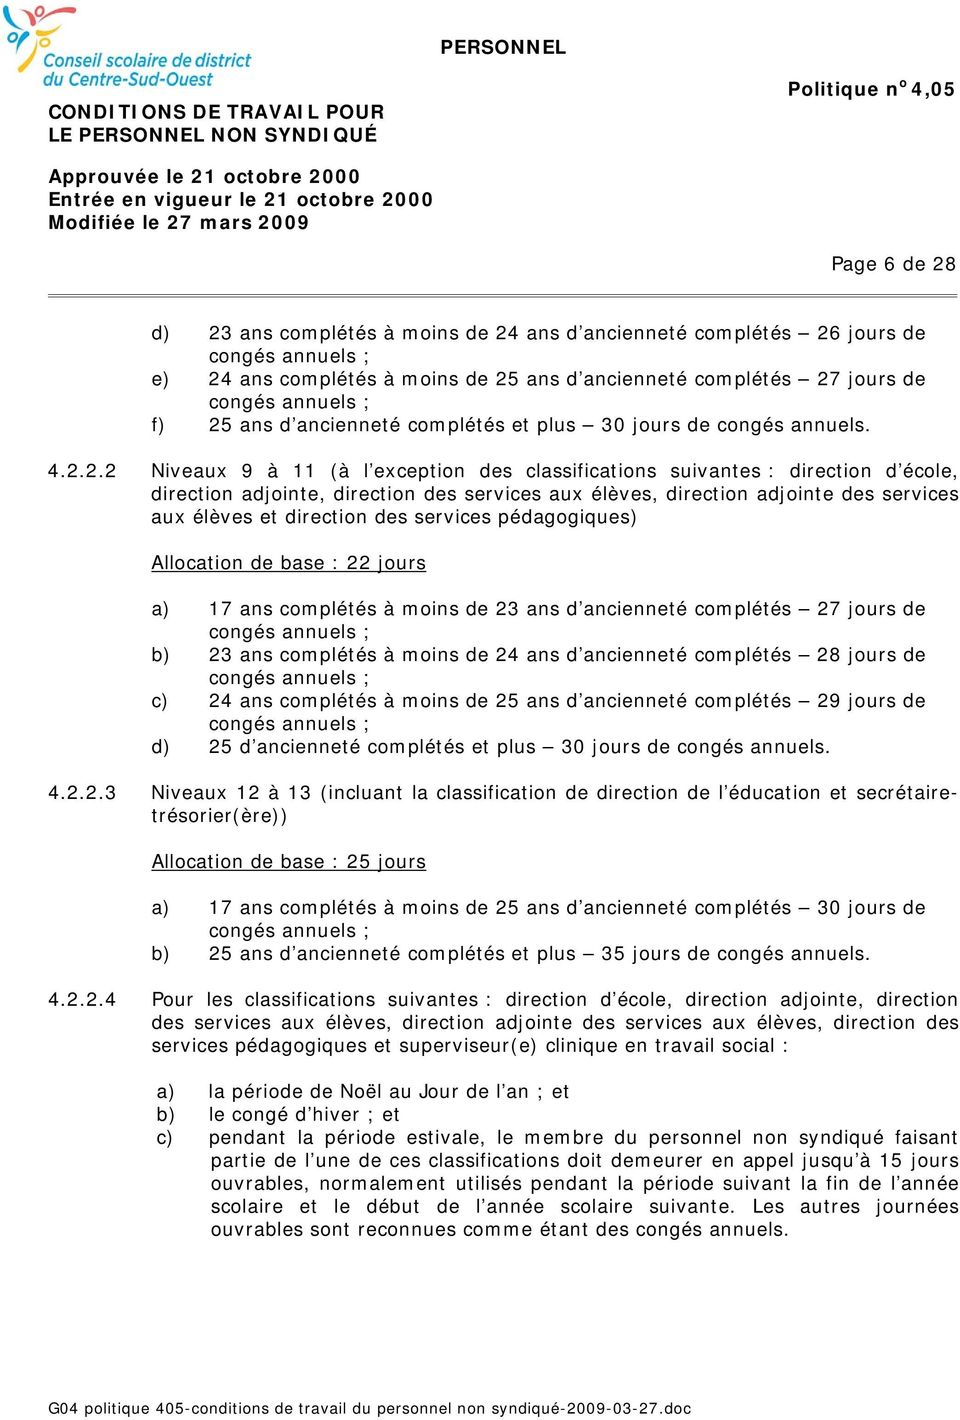 2.2 Niveaux 9 à 11 (à l exception des classifications suivantes : direction d école, direction adjointe, direction des services aux élèves, direction adjointe des services aux élèves et direction des